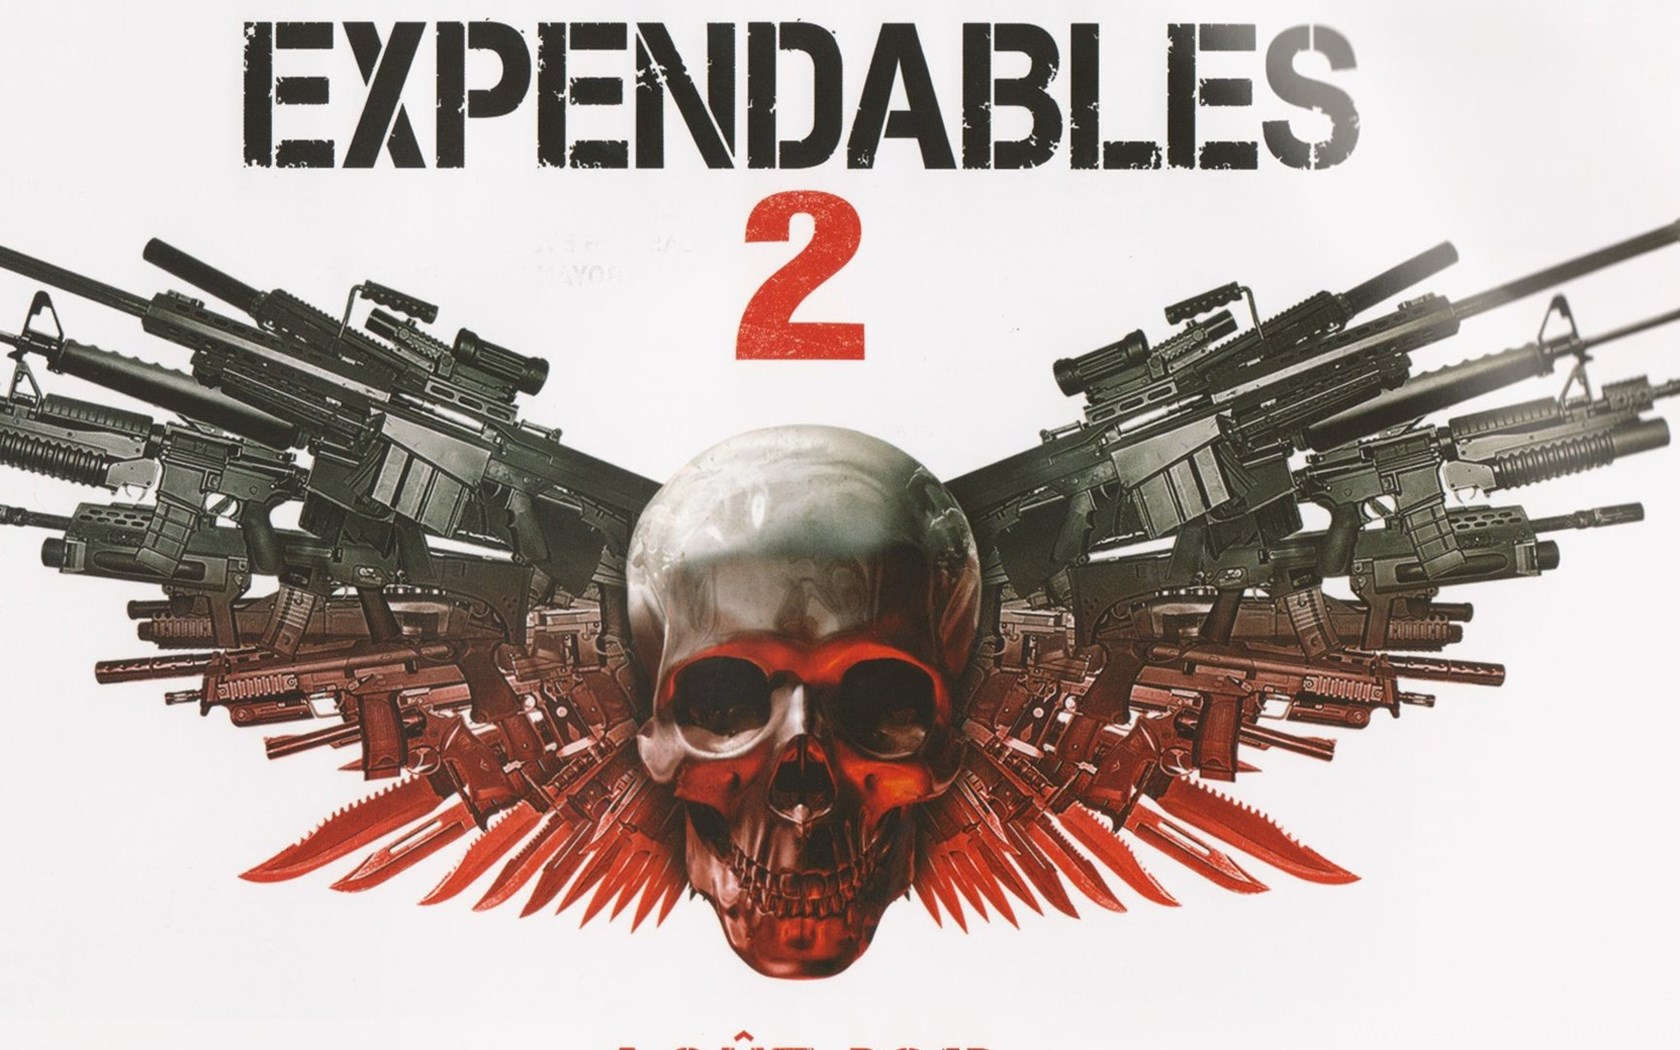 the expendables 2 wallpapers desktop background